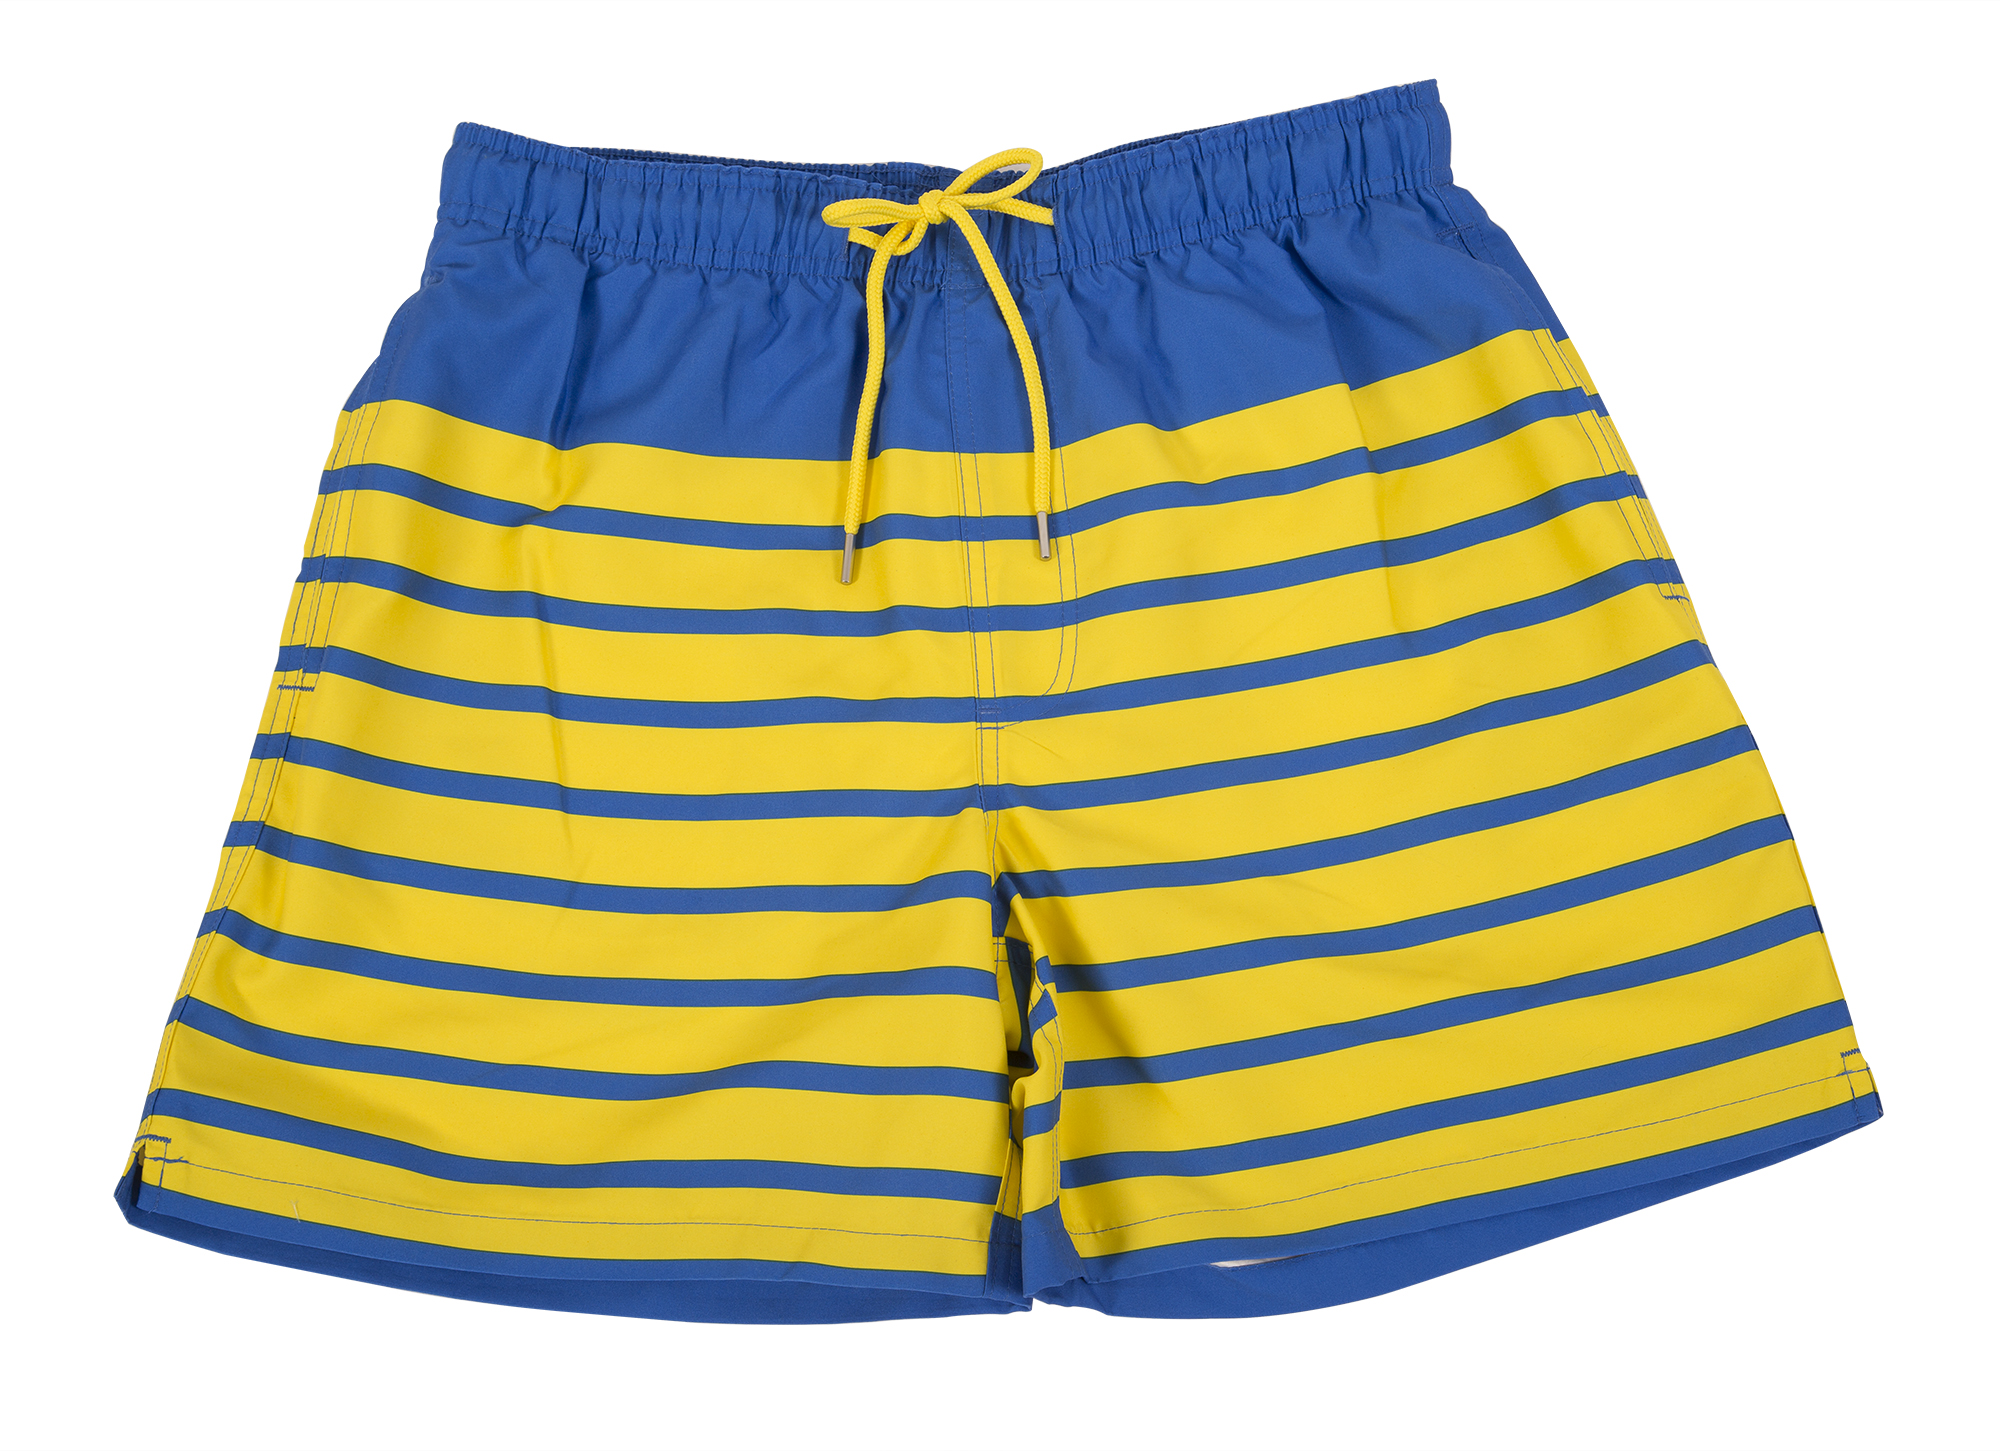 "Southern Tide ""For Shore Stripe Swim Trunk"" in ""royal blue and vibrant yellow,"" $85 at M. Dumas & Sons"